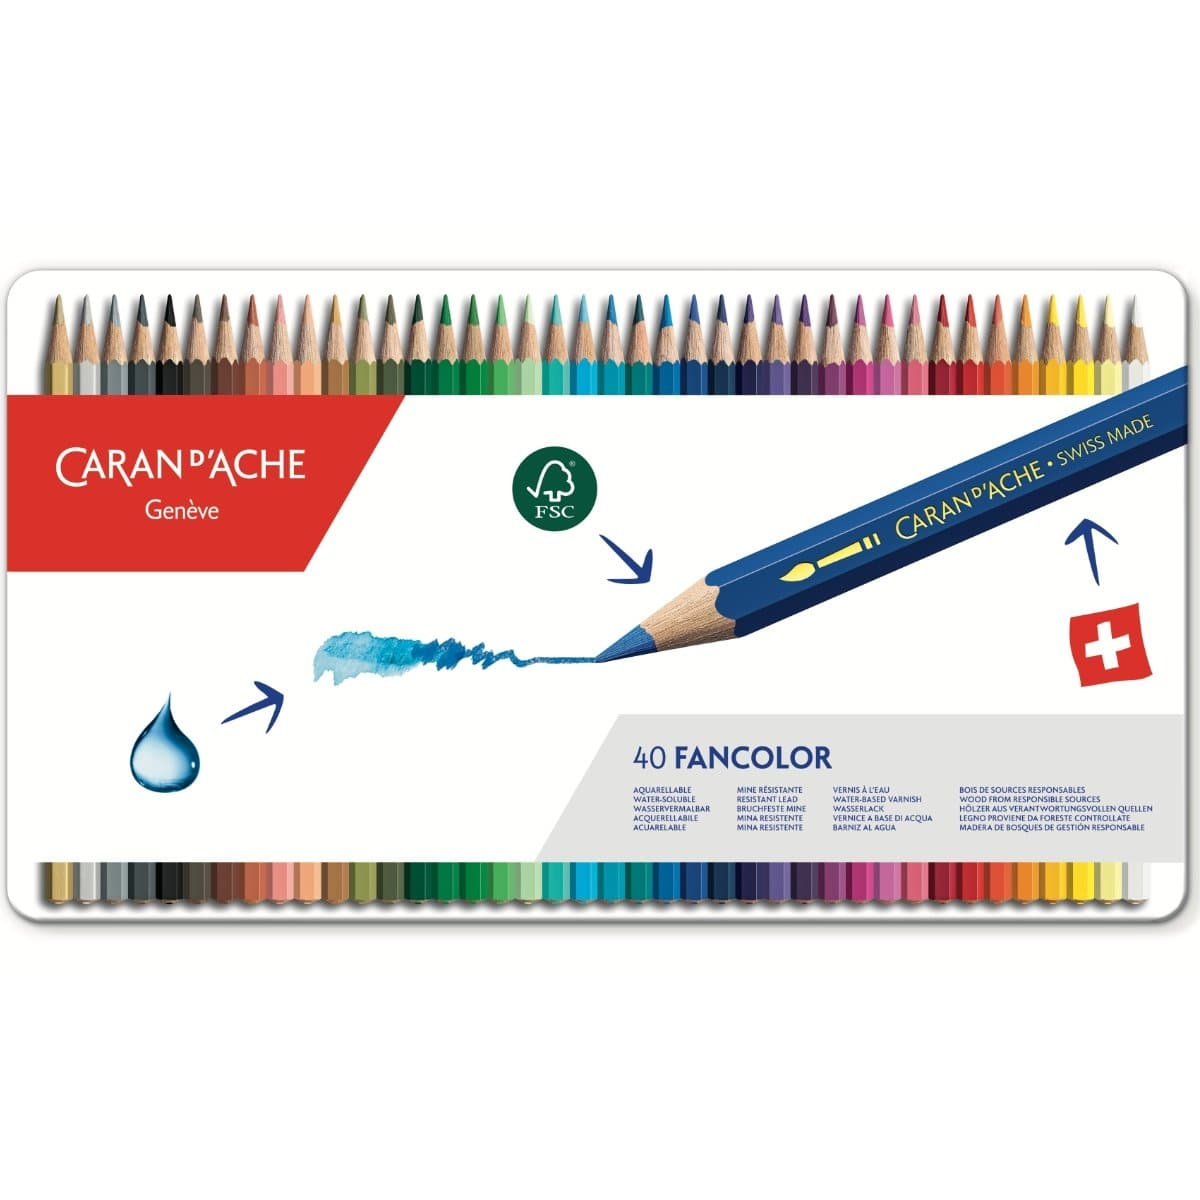 CARAN d'ACHE FANCOLOR Color Pencil, 40/metal case